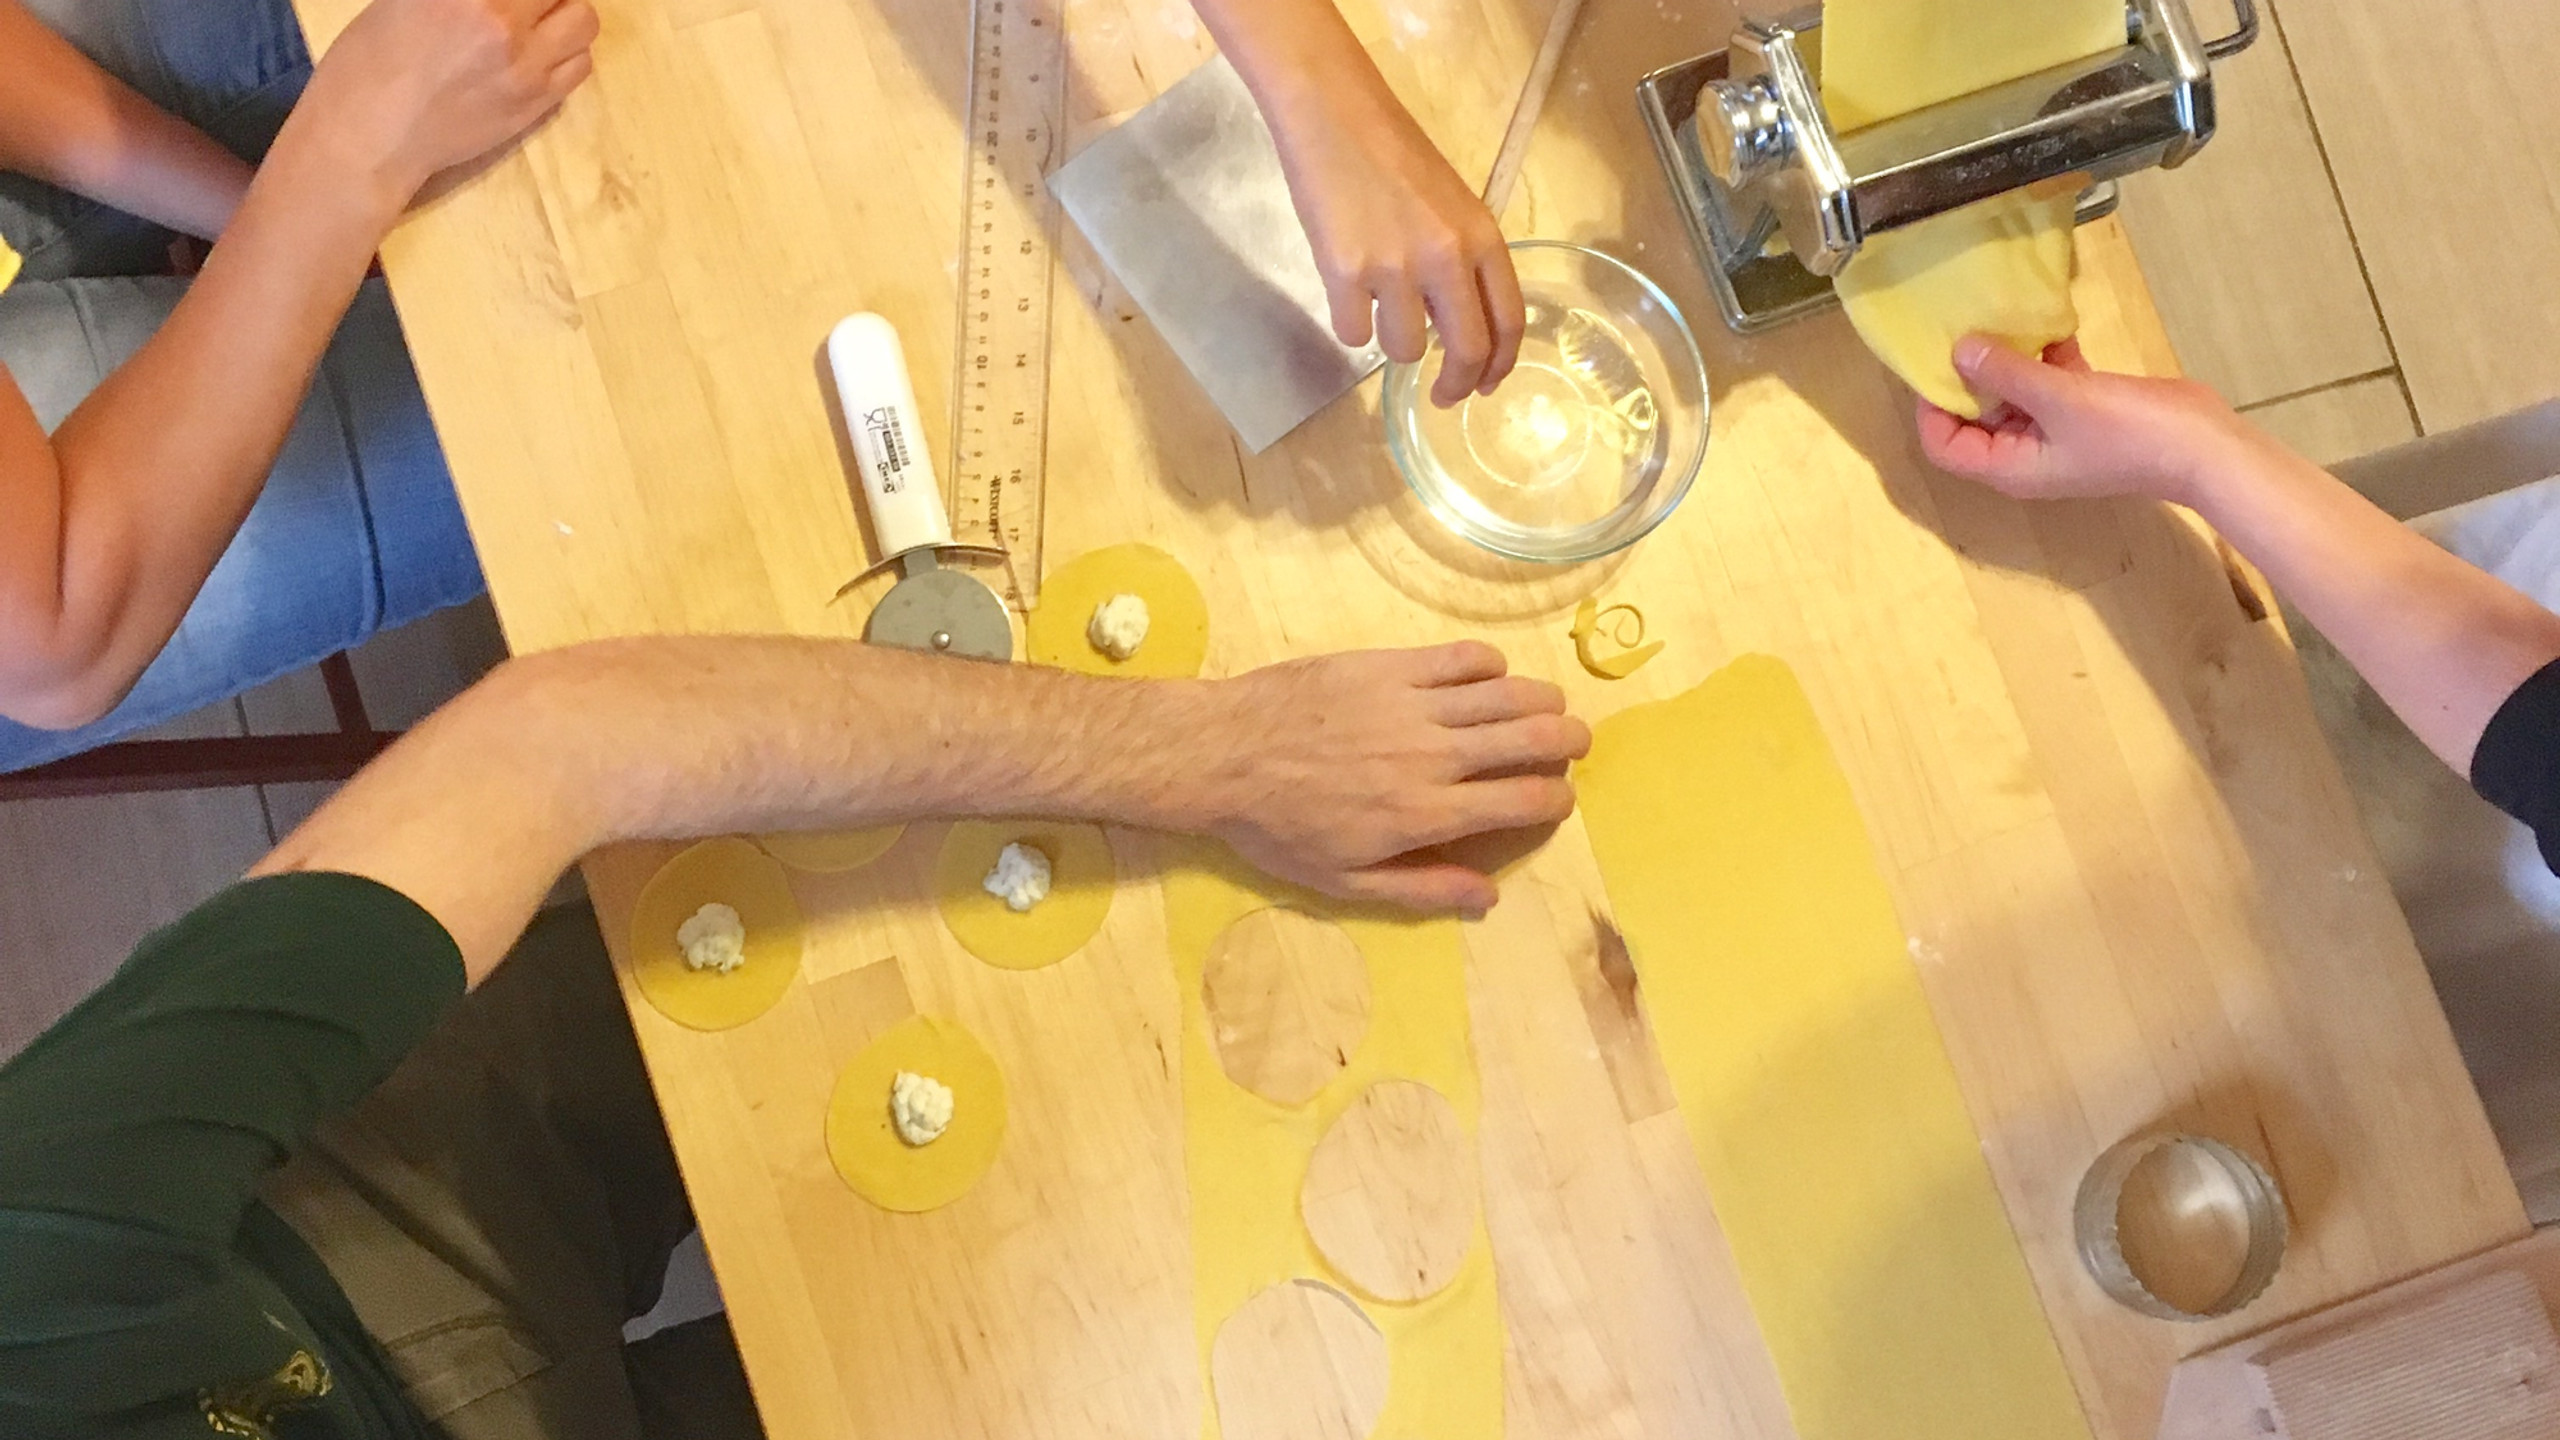 Rolling out the dough and making tortellini overhead, 100 days of pasta_